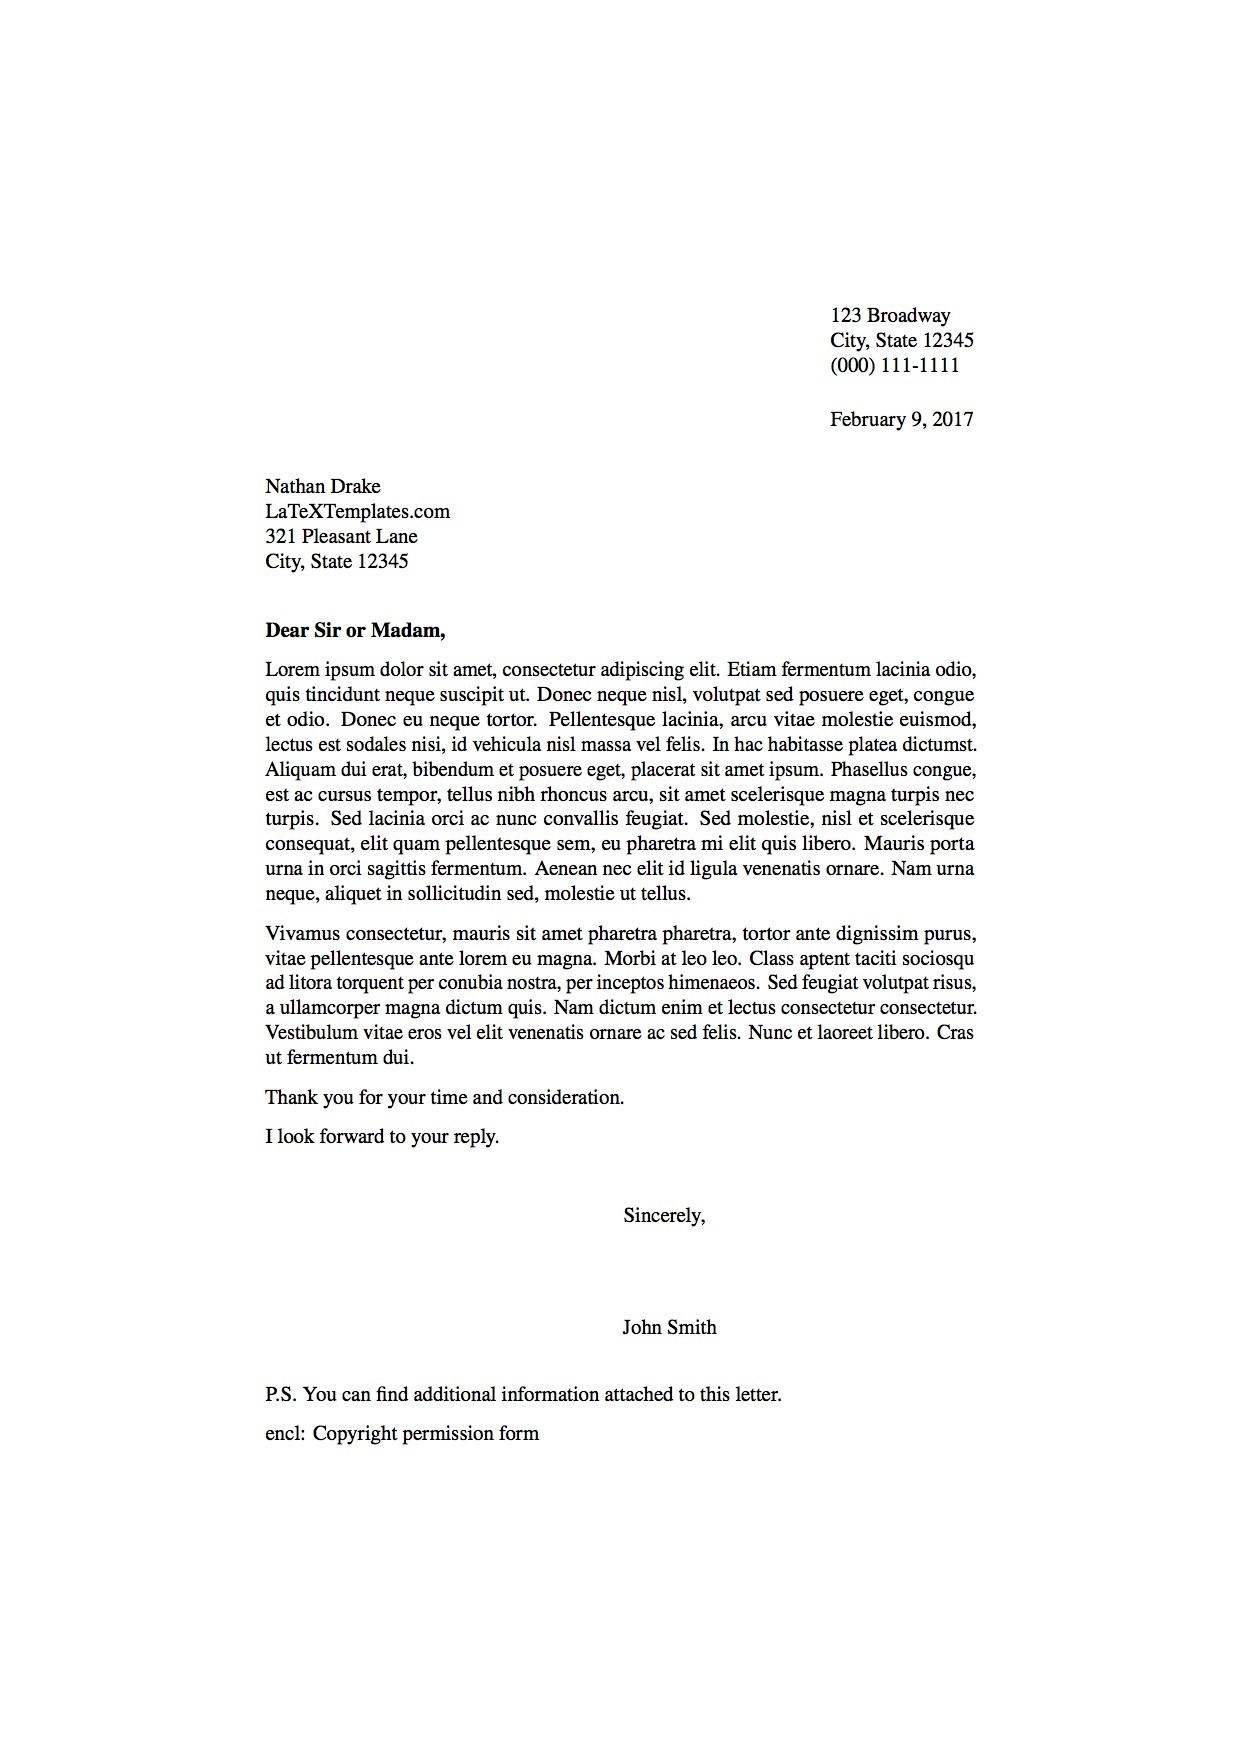 Latex Templates » Formal Letters within Formal Letter Format To Congressman 20077